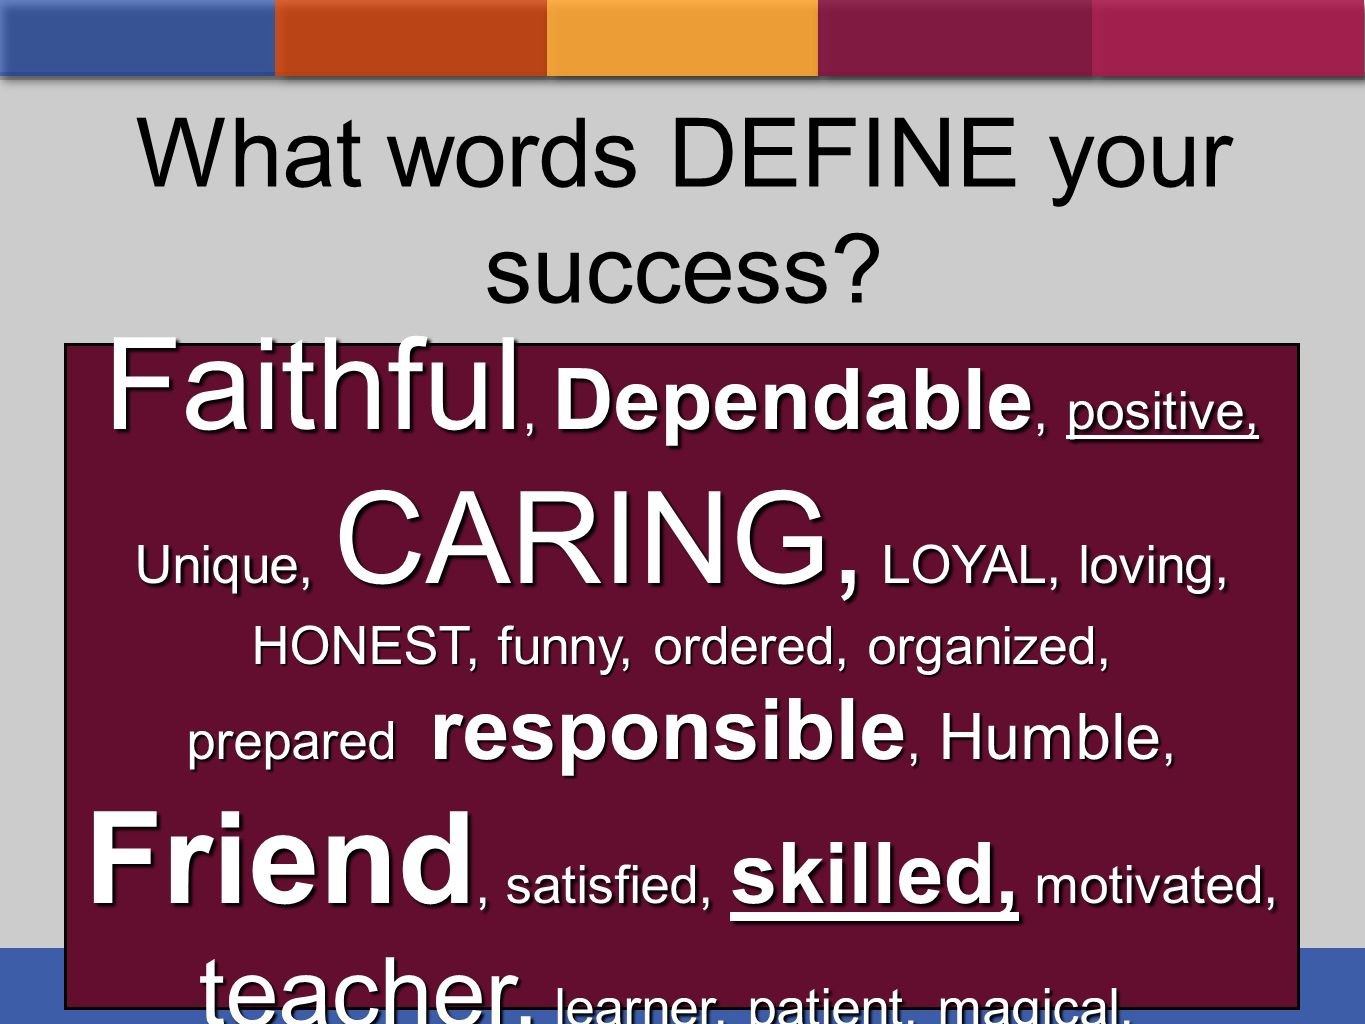 What words DEFINE your success